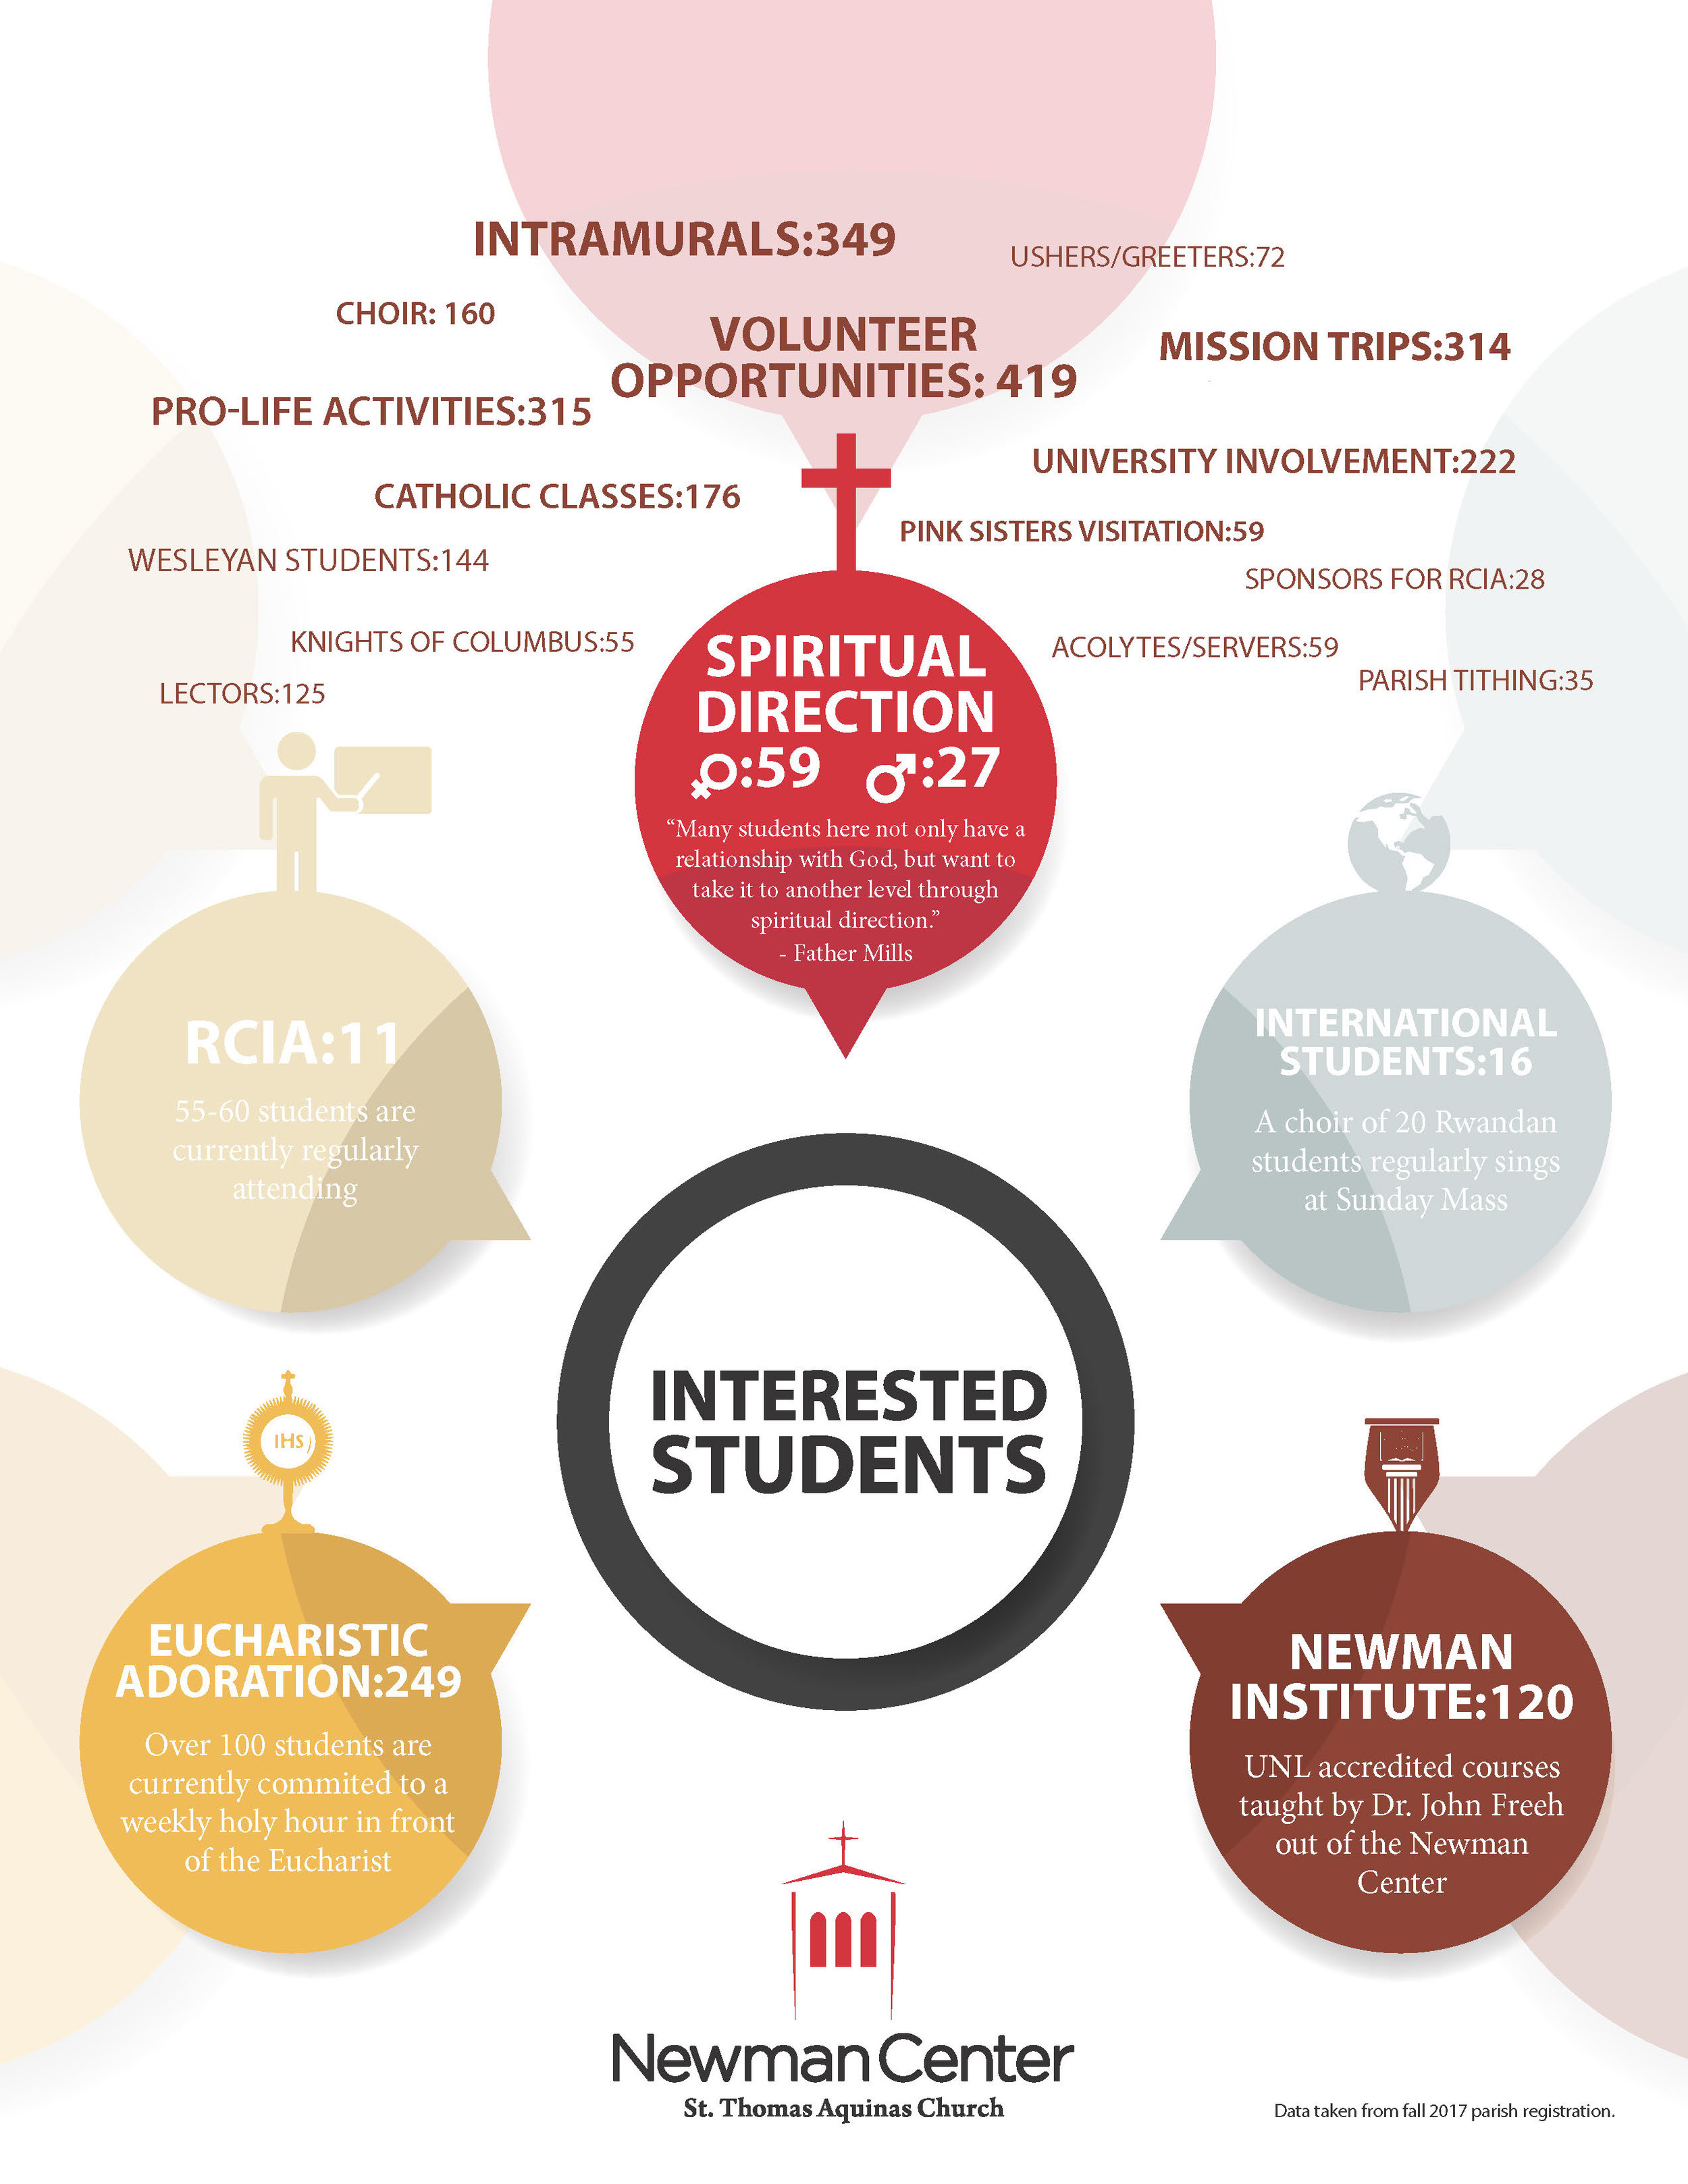 interested_students_infographic.jpg